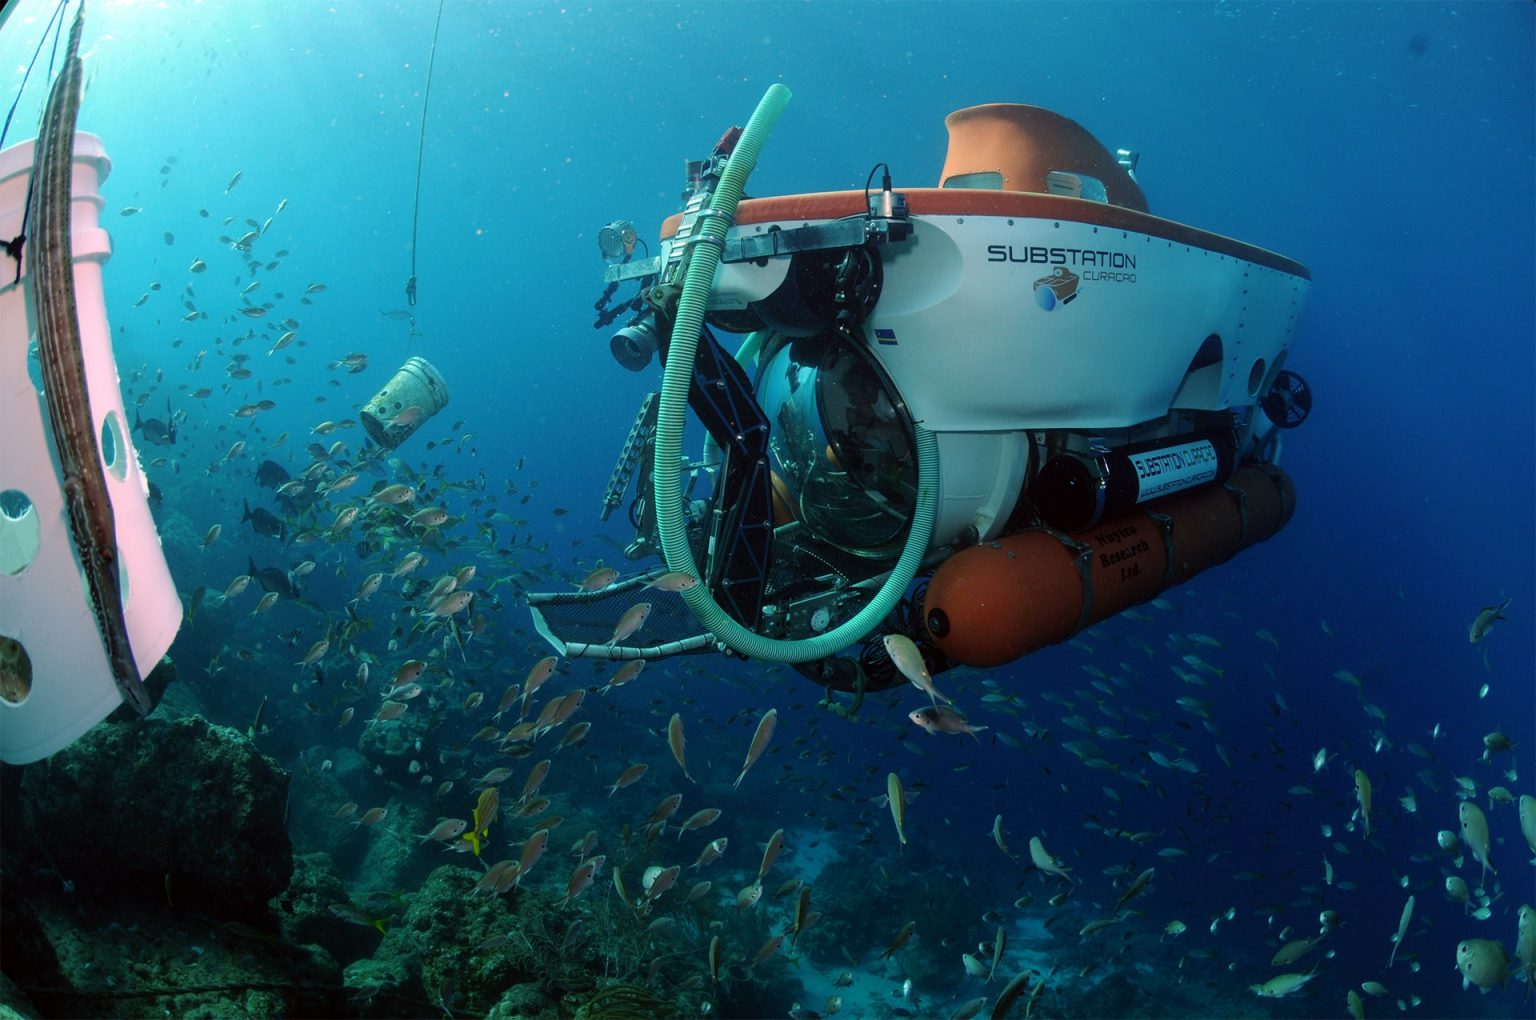 CuraSub taking researchers down to study while exploring the sea of Curaçao for extended periods of time to depths of 1000ft.